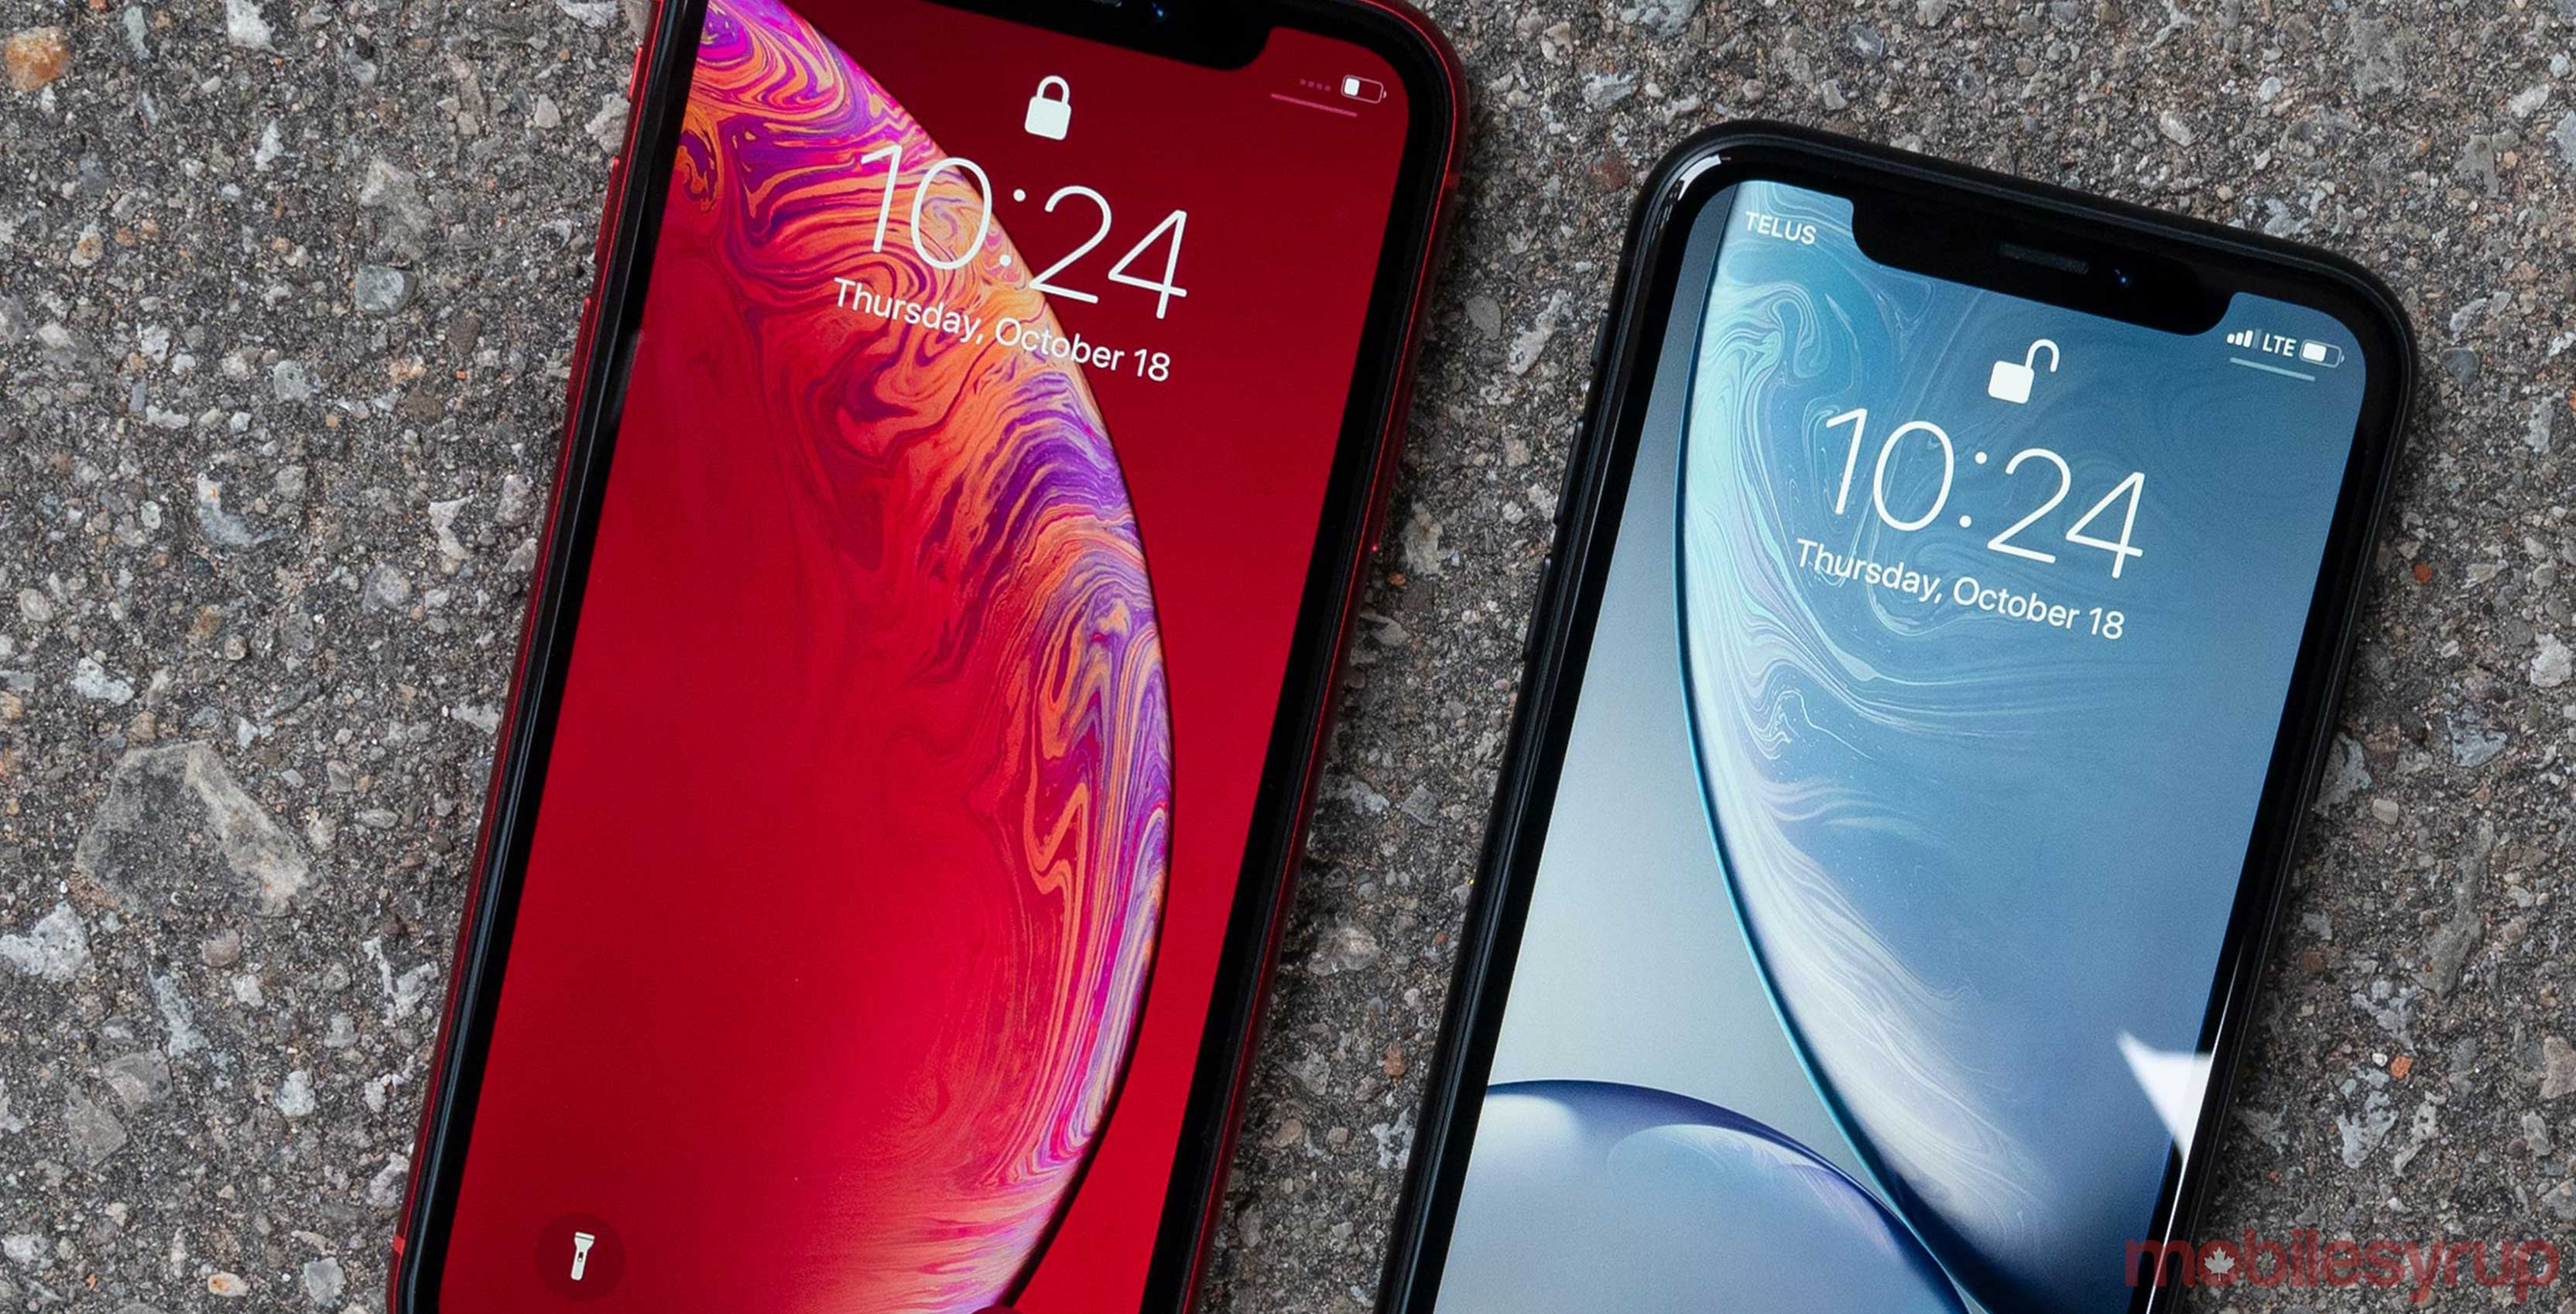 Apple issues new version of iOS 12 1 for iPhone XR